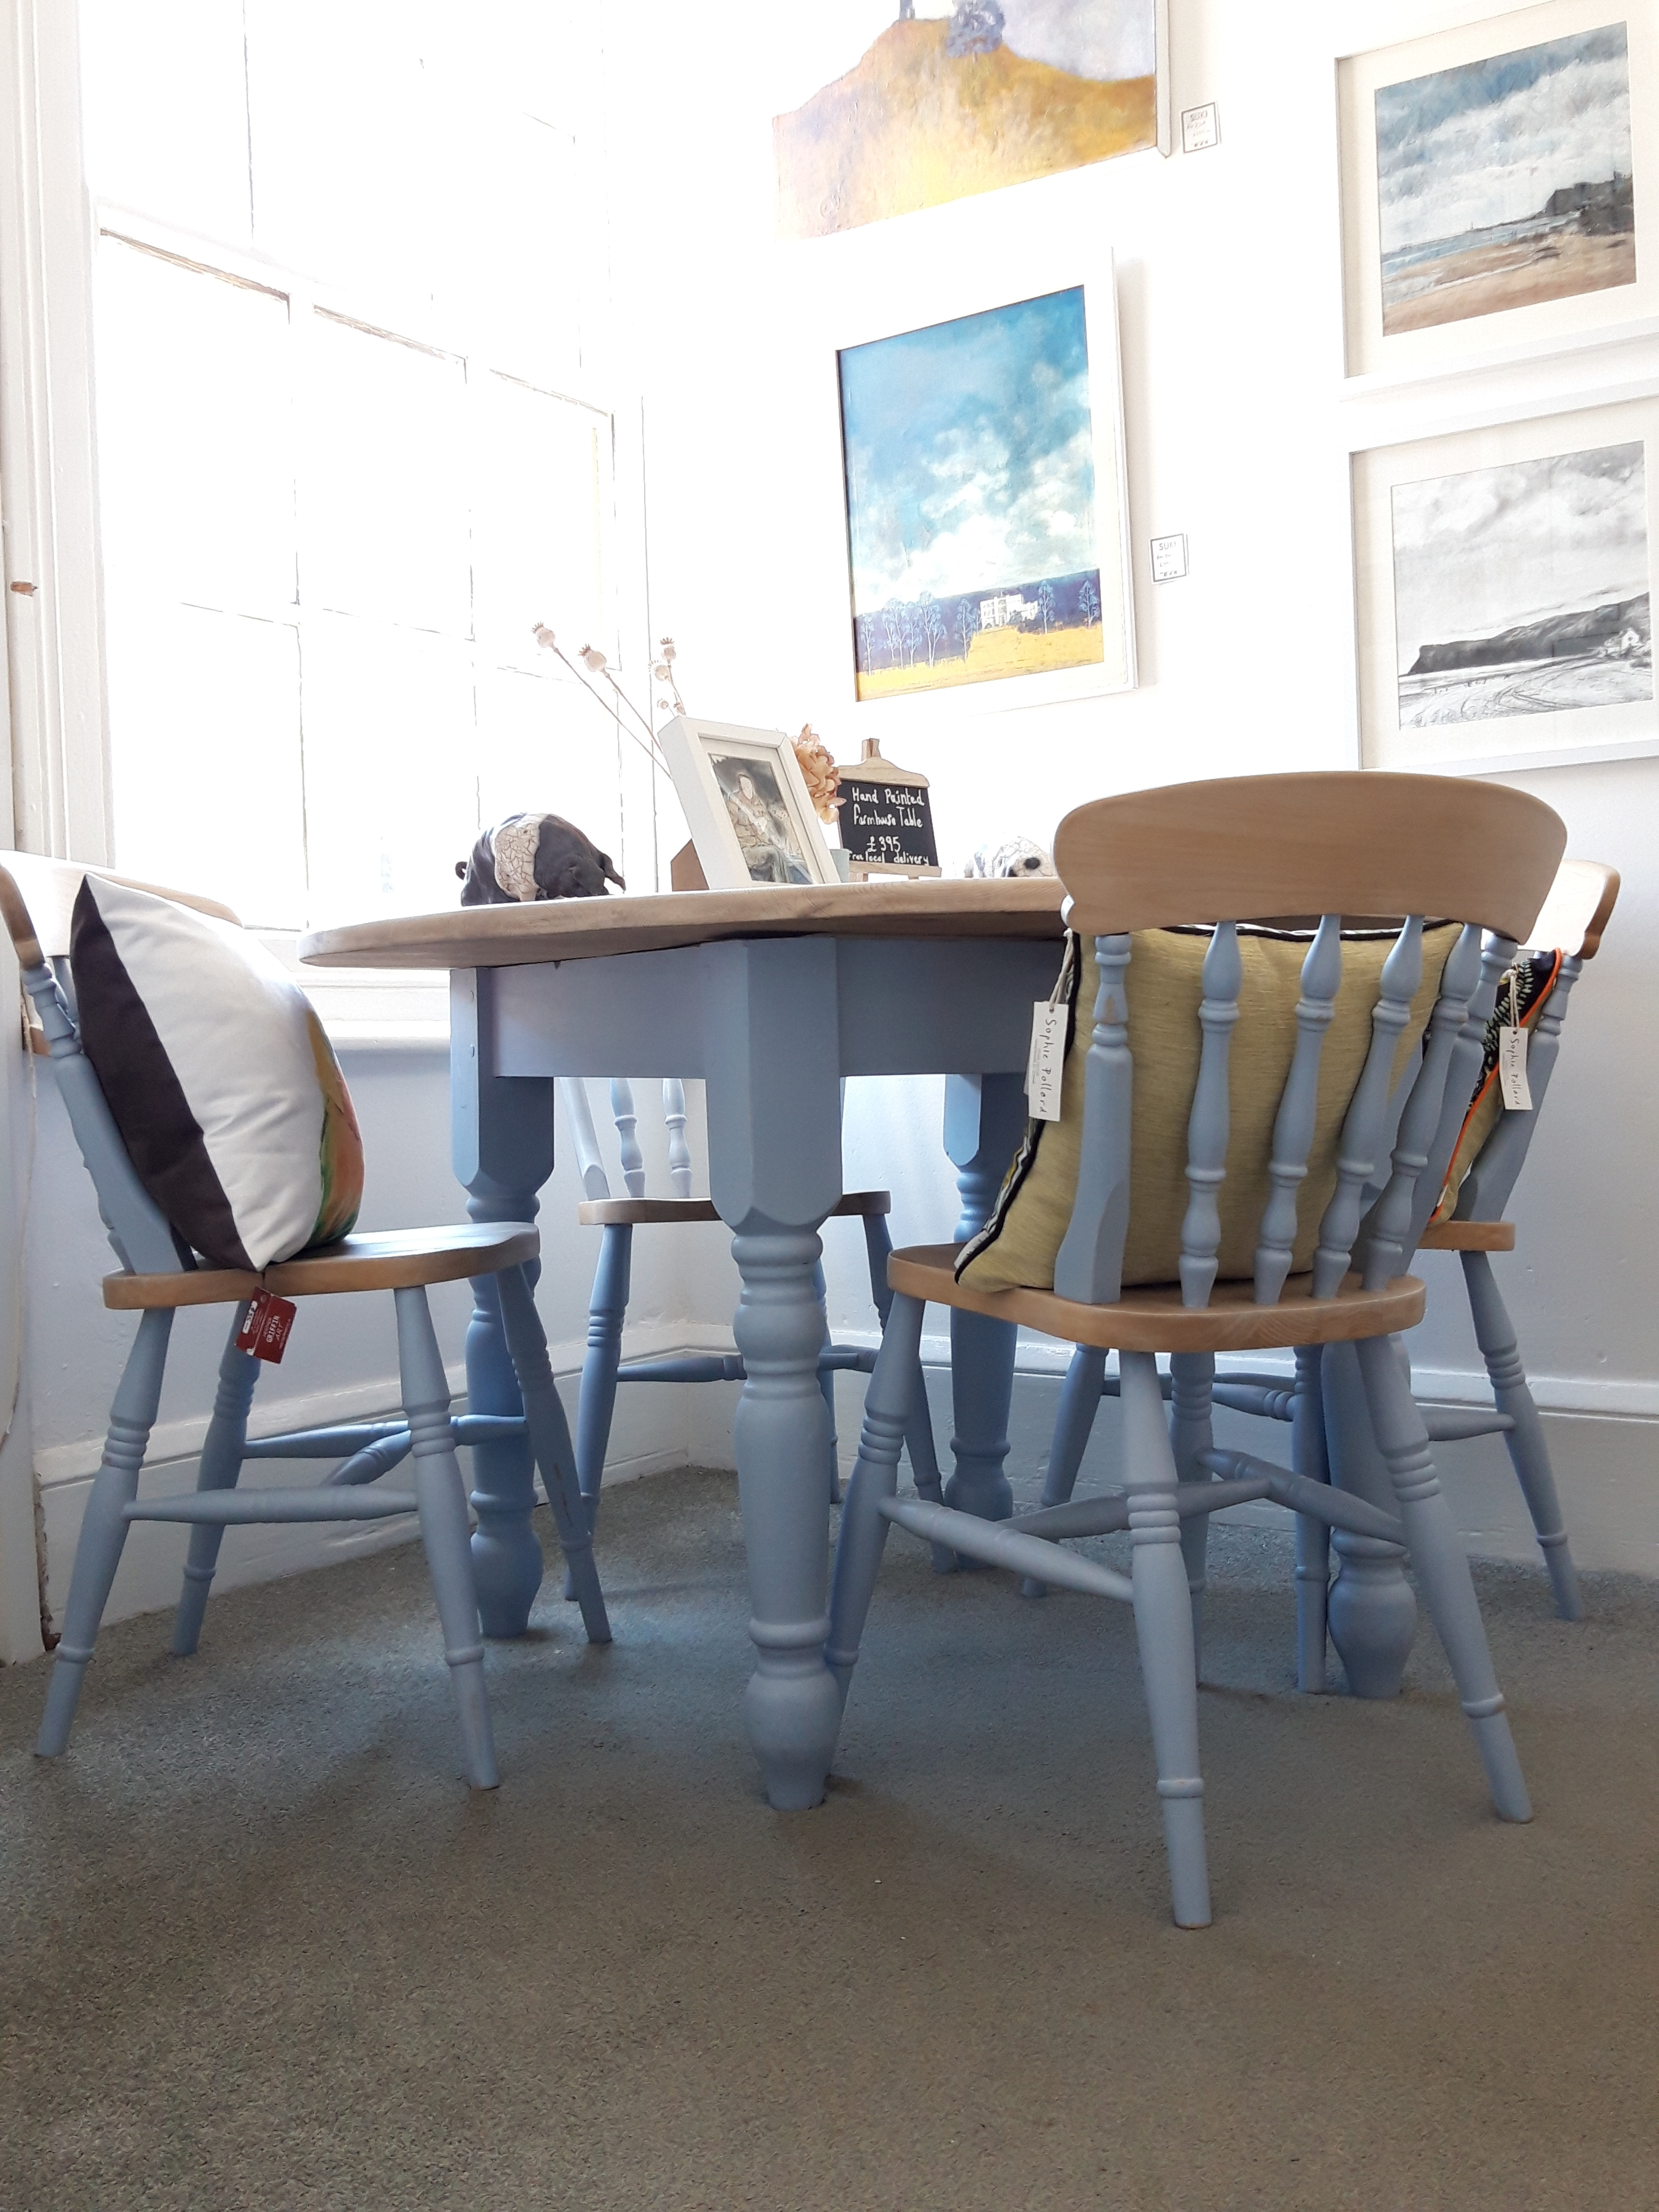 Farmhouse Style Hand Painted Round Pine Dining Table 4 Chairs Soft Blue Grey Modern Look Rustic Kitchen Or New Home